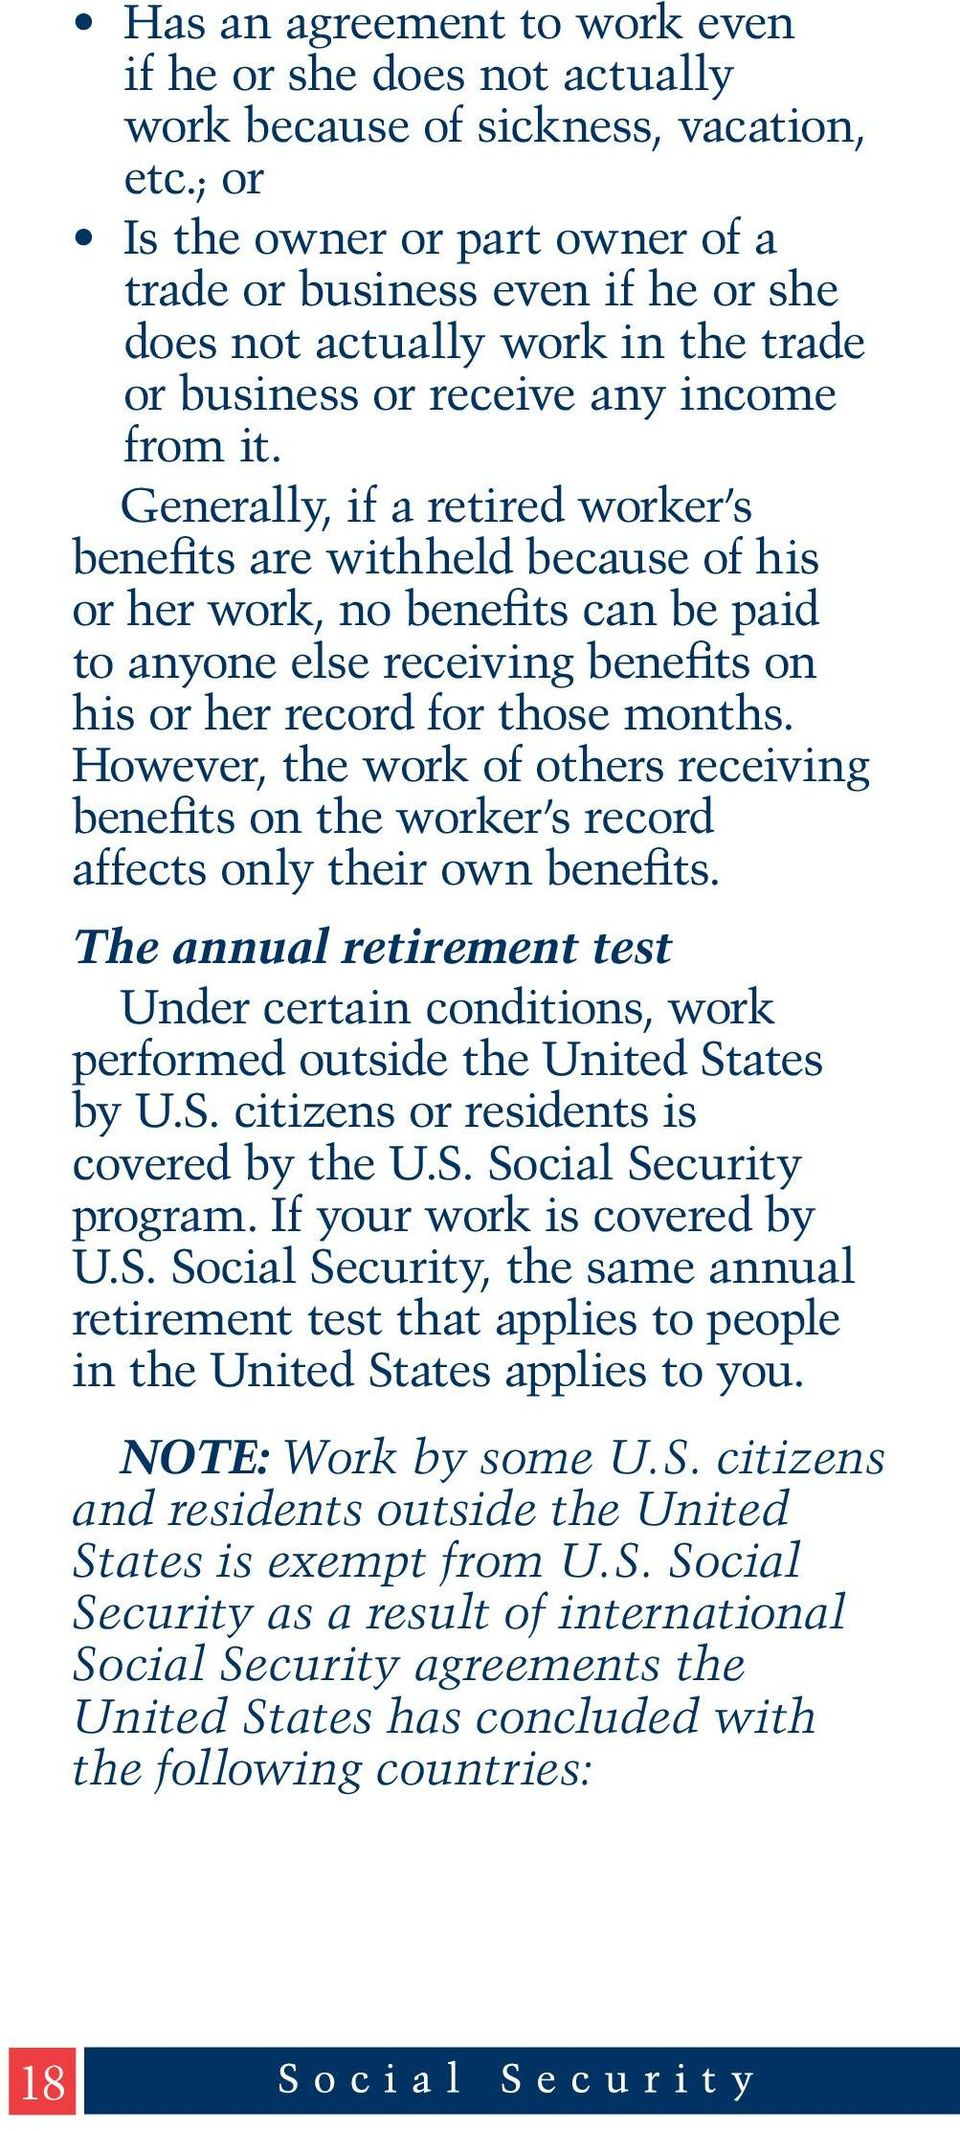 Generally, if a retired worker s benefits are withheld because of his or her work, no benefits can be paid to anyone else receiving benefits on his or her record for those months.